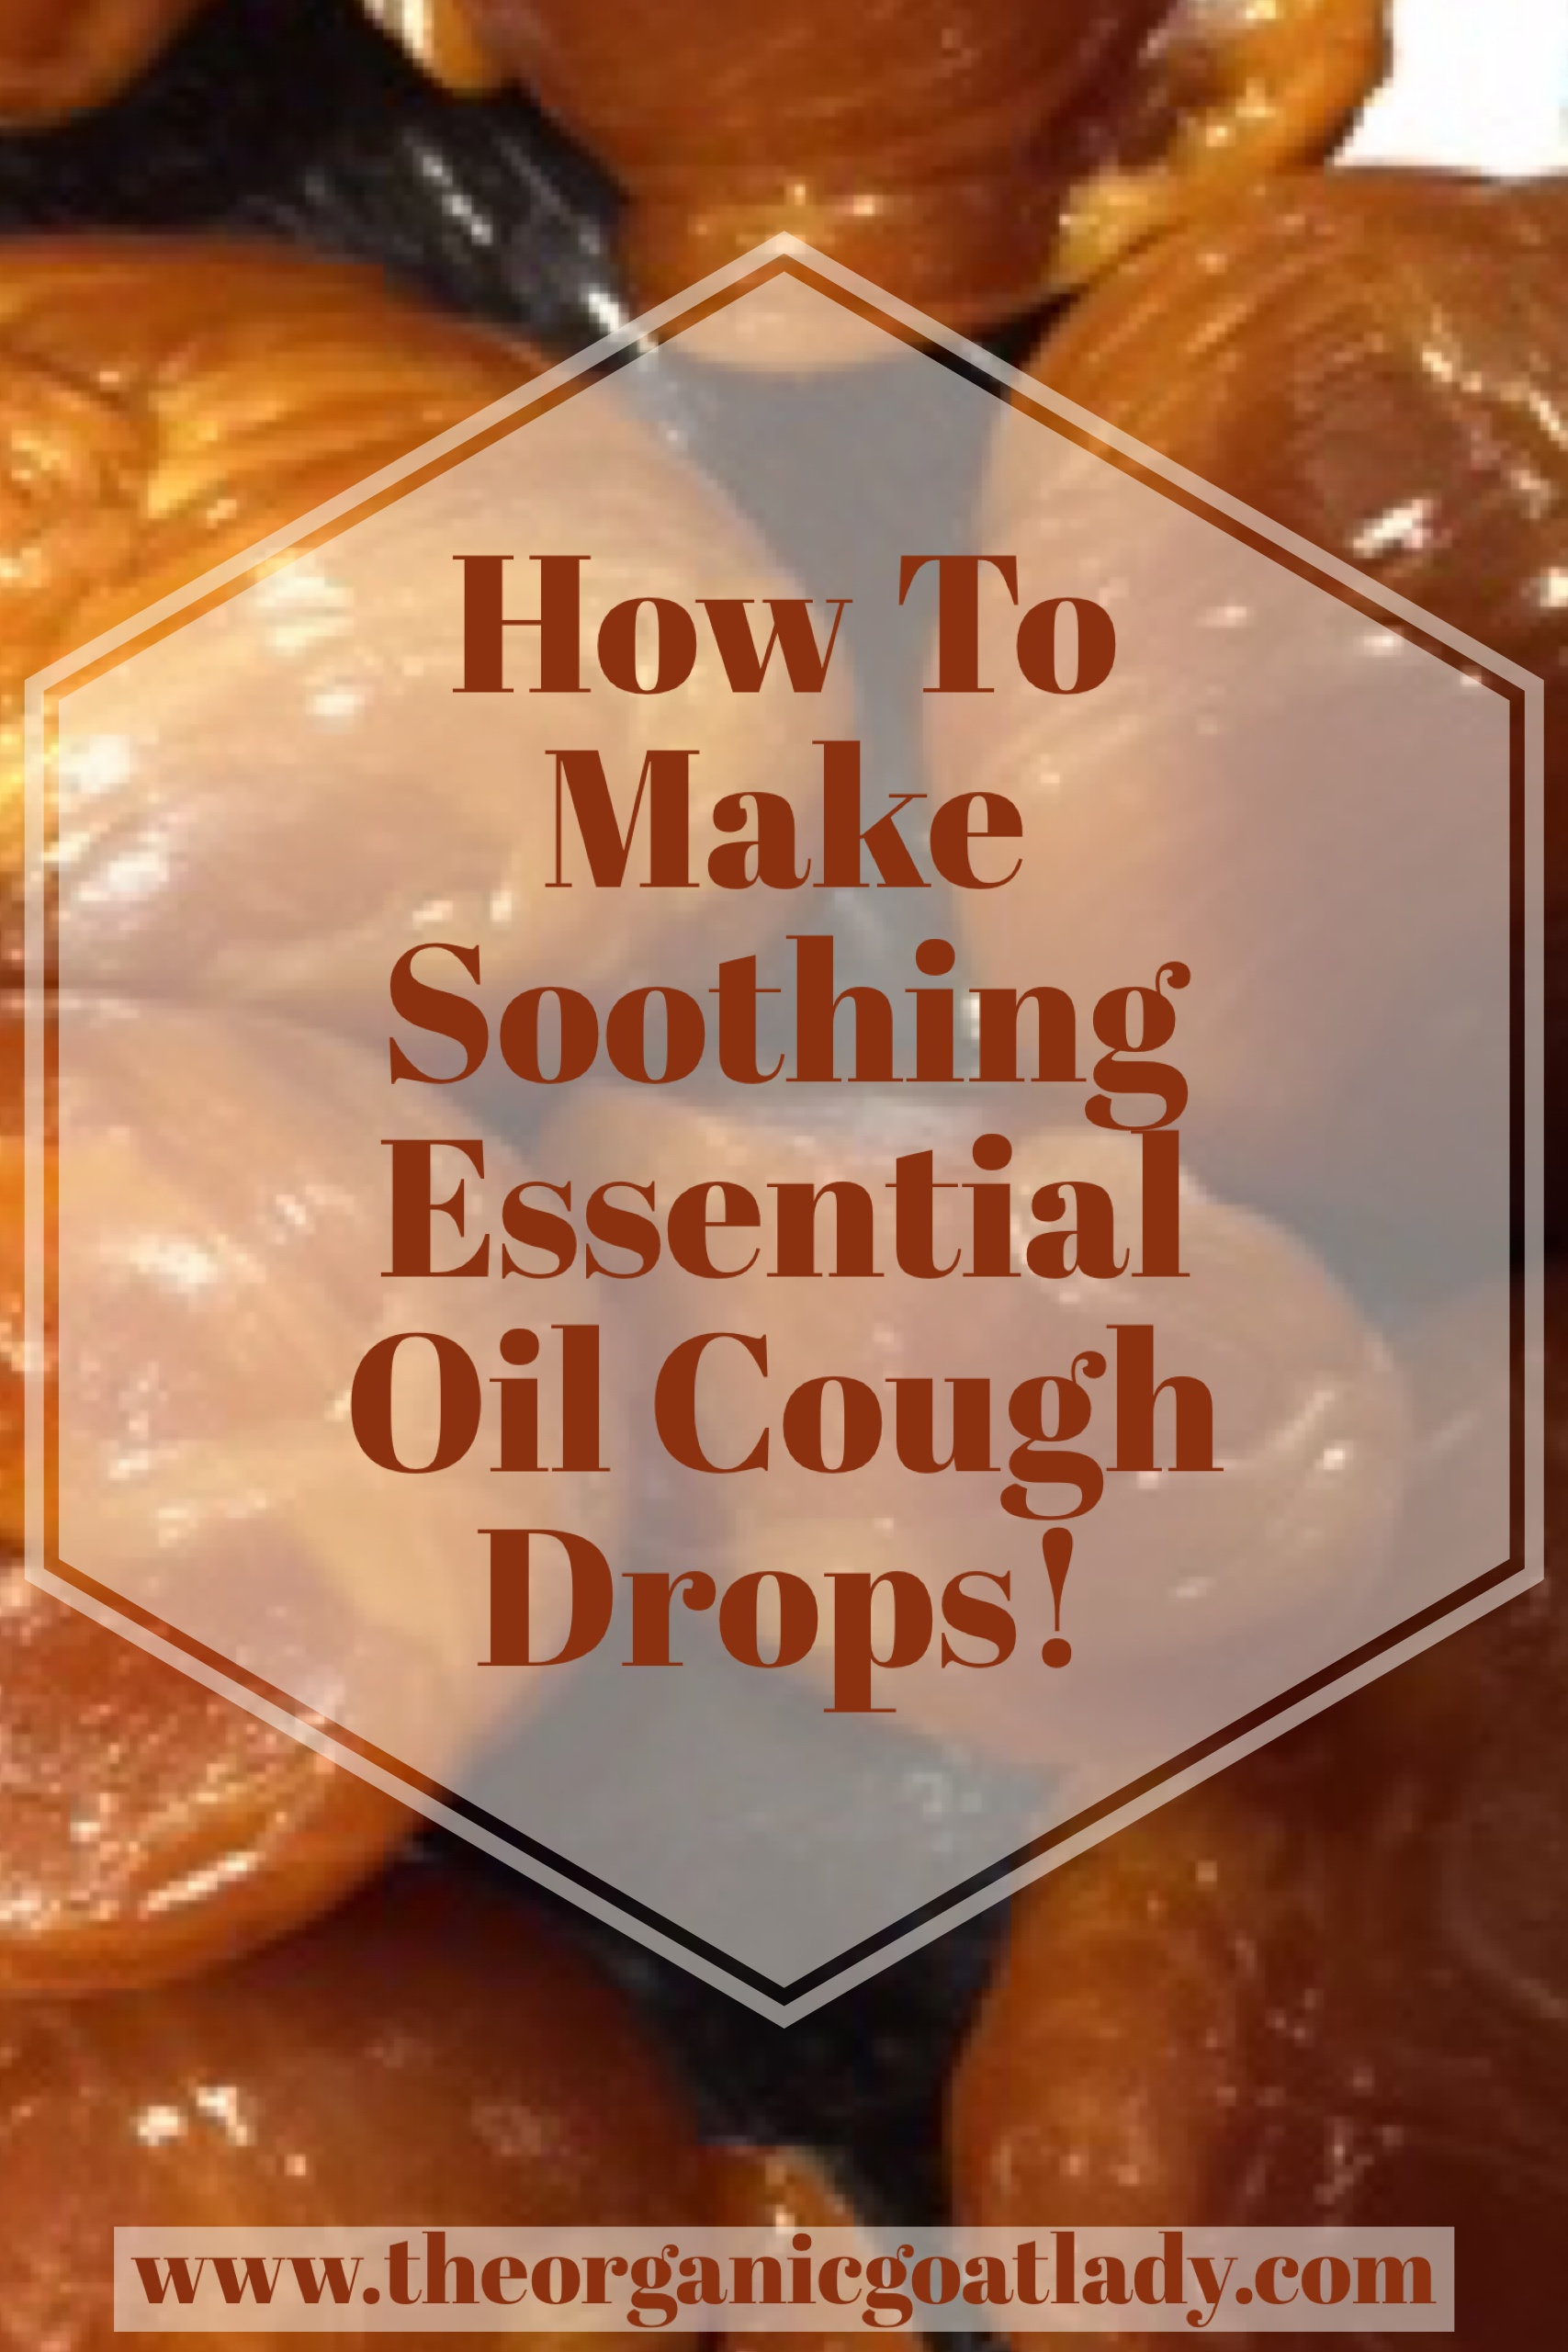 How To Make Soothing Essential Oil Cough Drops